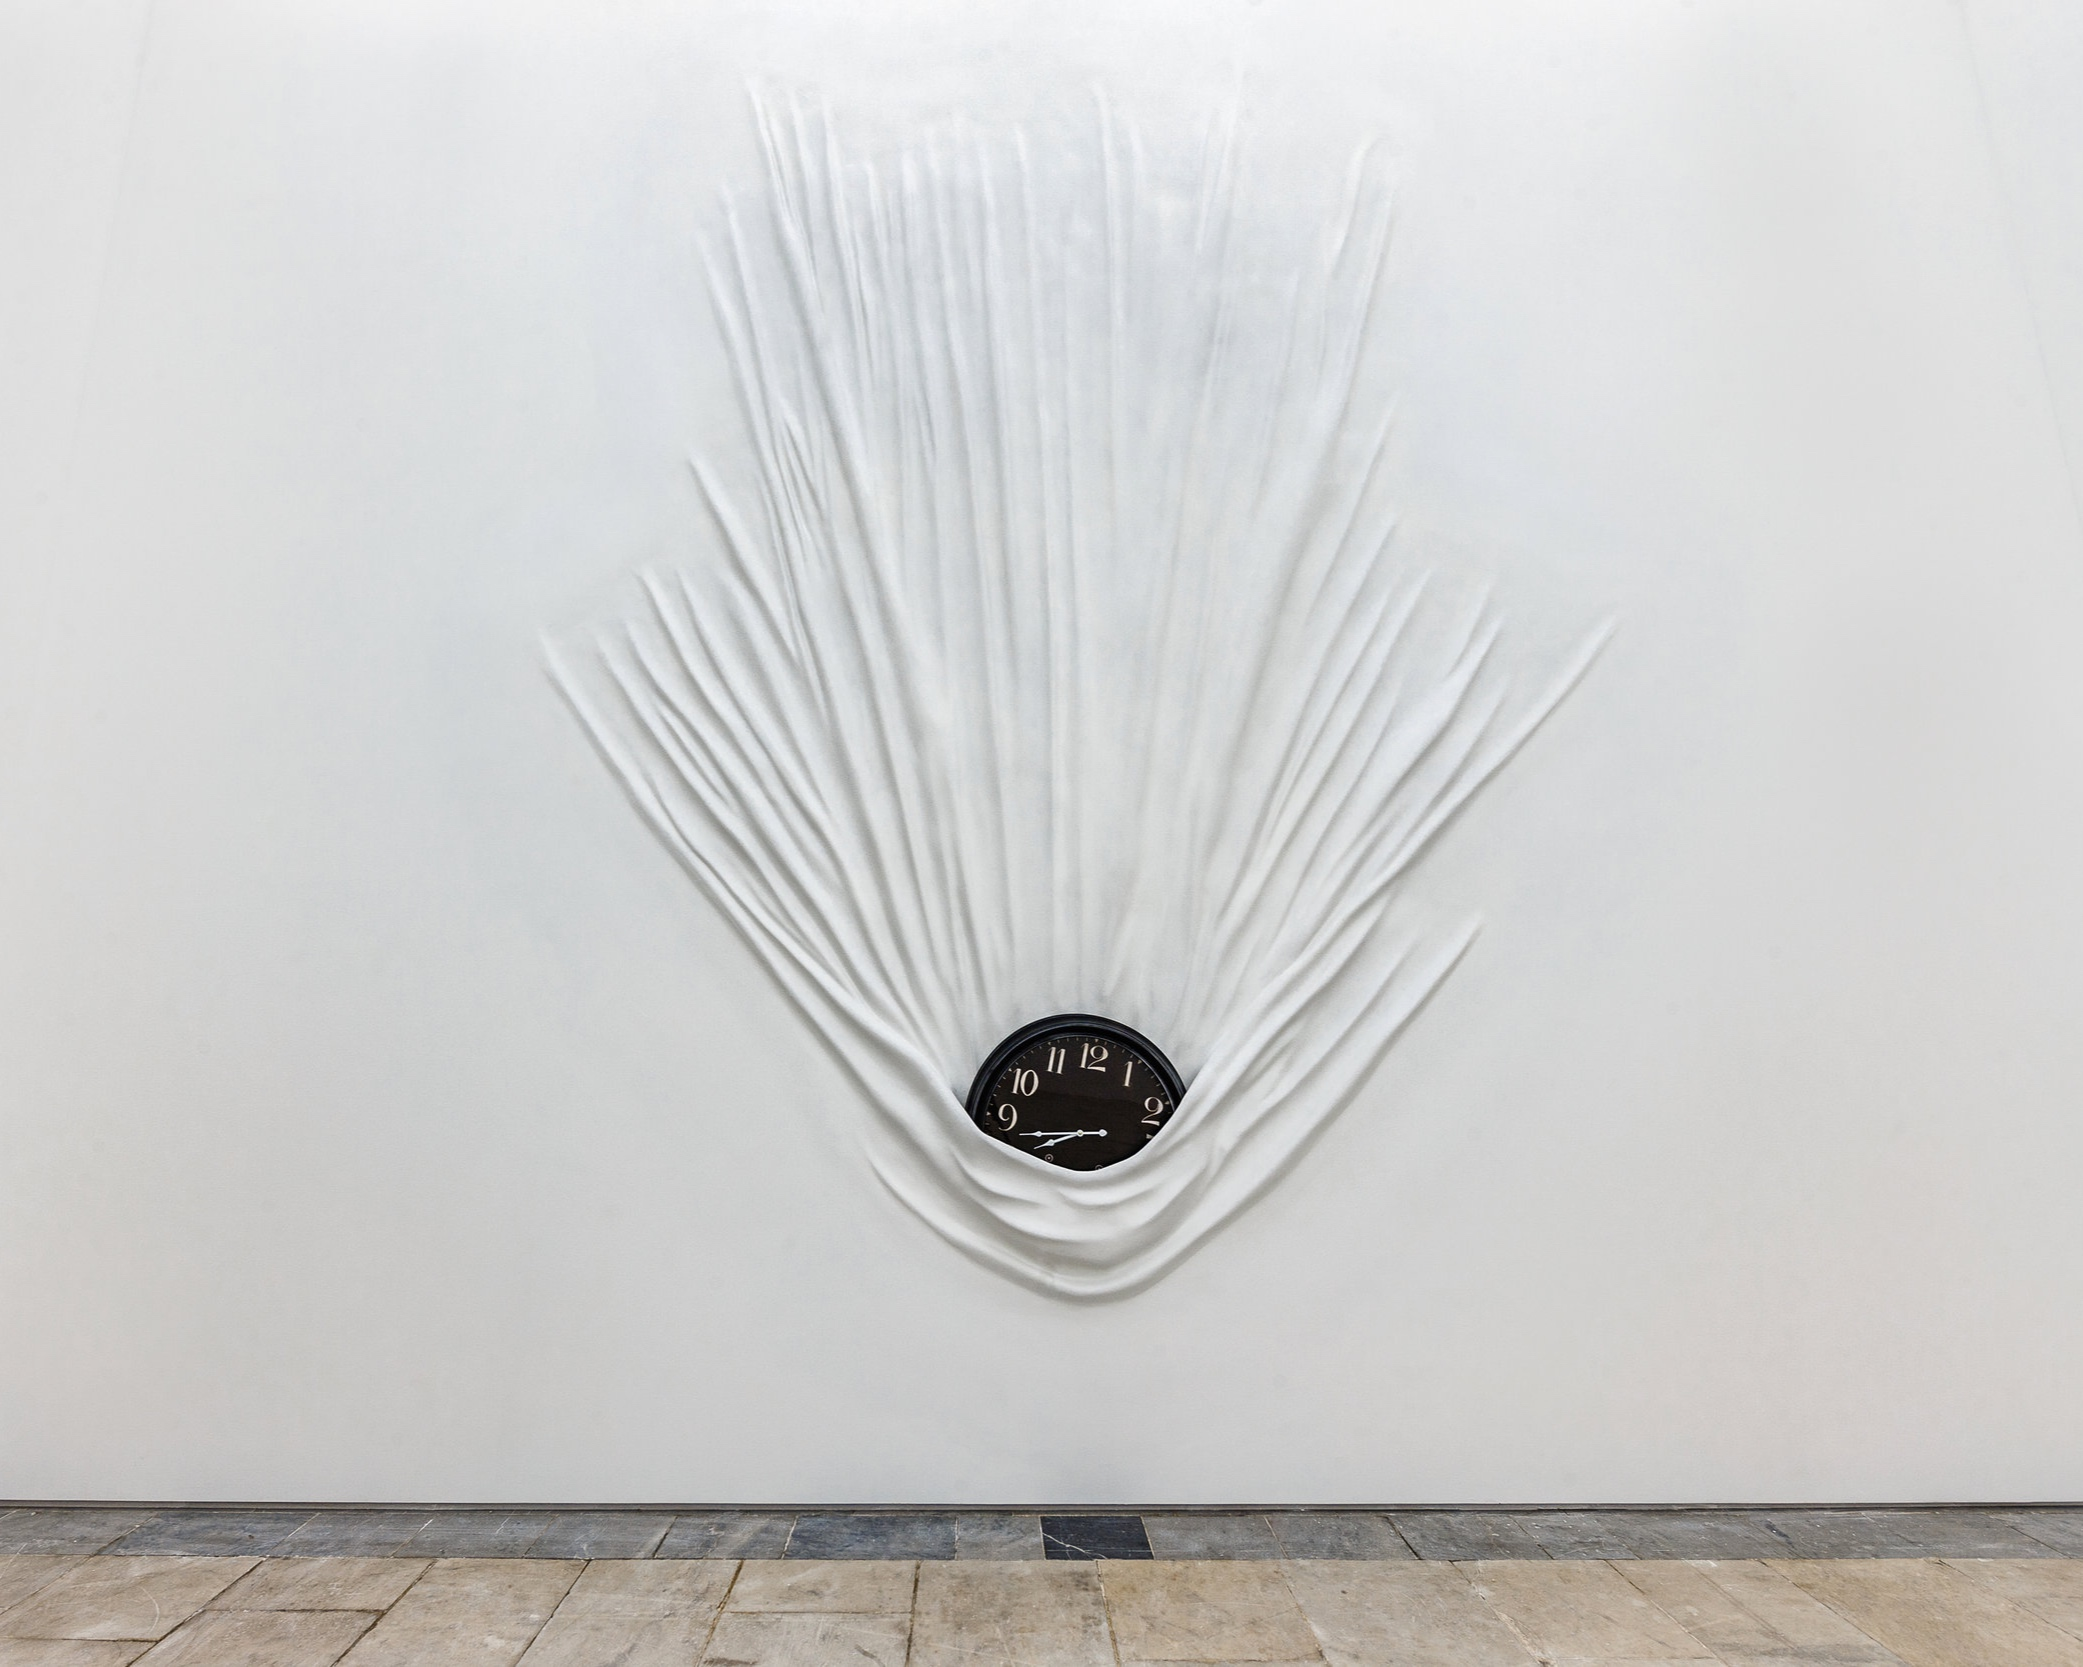 Daniel Arsham  -  Falling Clock , 2019 Fiberglass, paint, joint compound, clock 96 x 72 x 8 inches